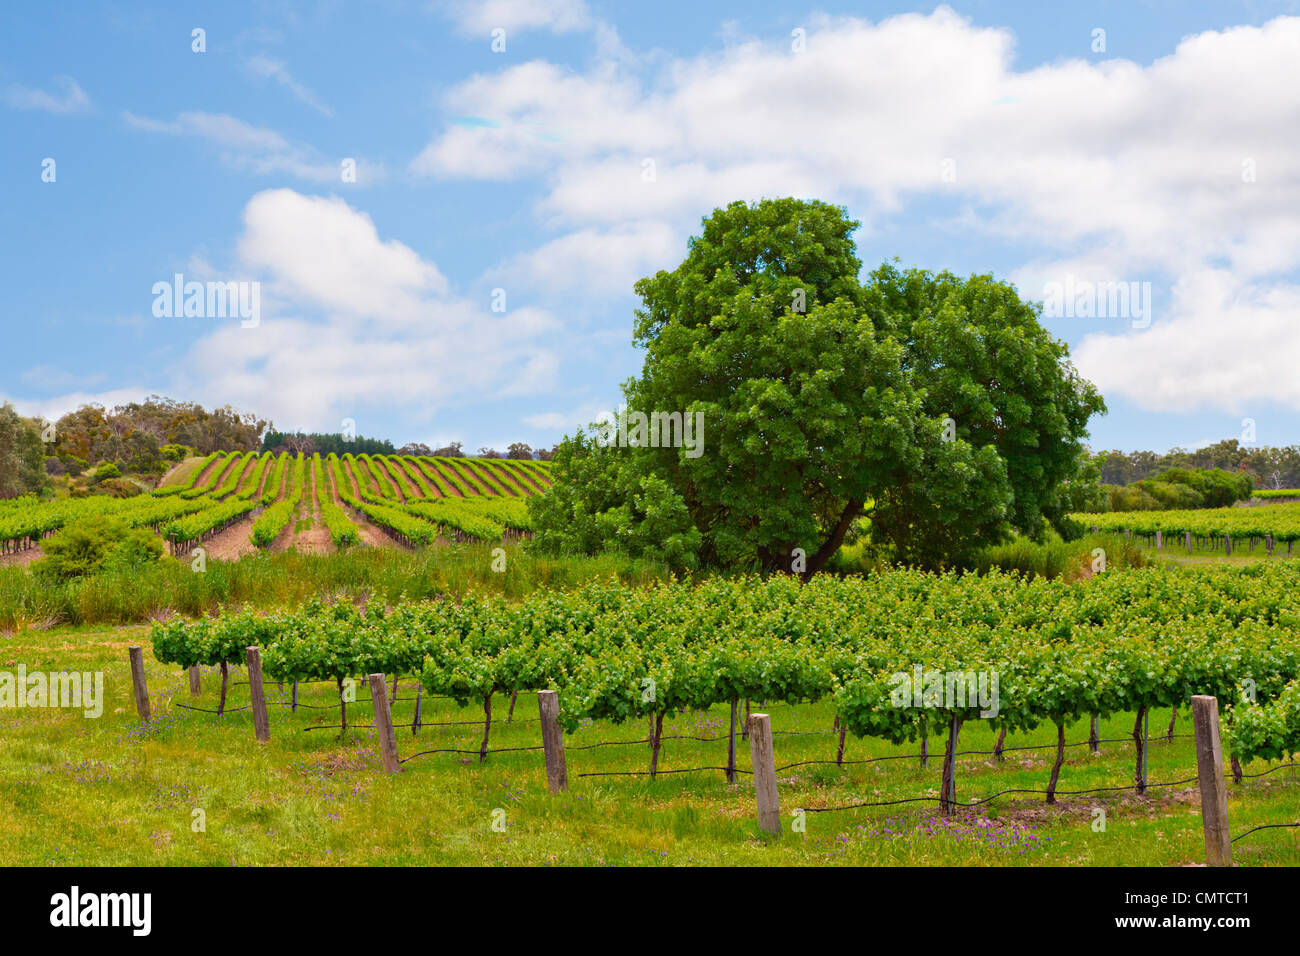 A vineyard in the Clare Valley, South Australia. - Stock Image